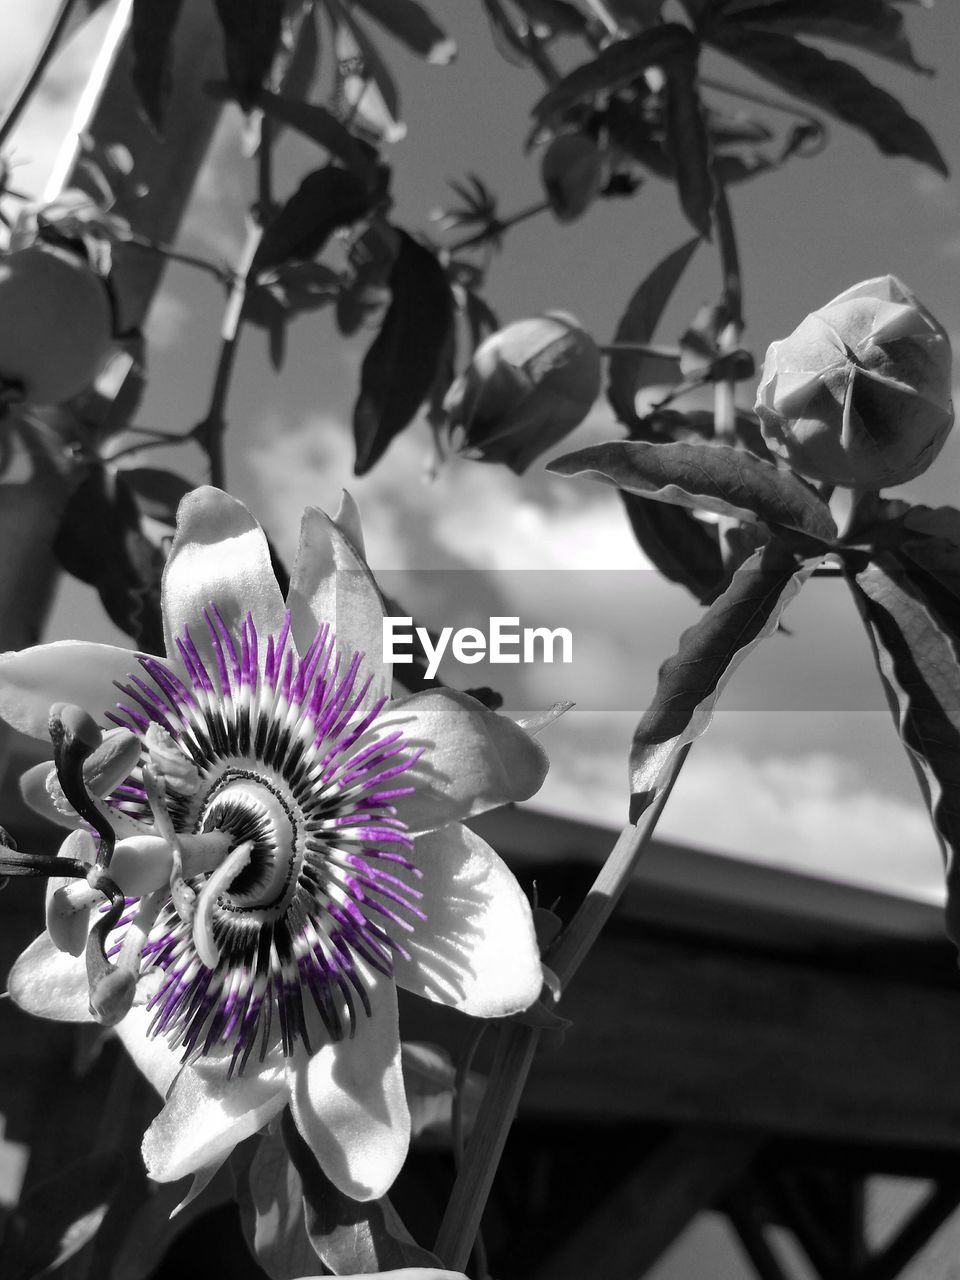 flower, petal, fragility, flower head, beauty in nature, growth, freshness, nature, blooming, plant, no people, day, close-up, outdoors, purple, focus on foreground, passion flower